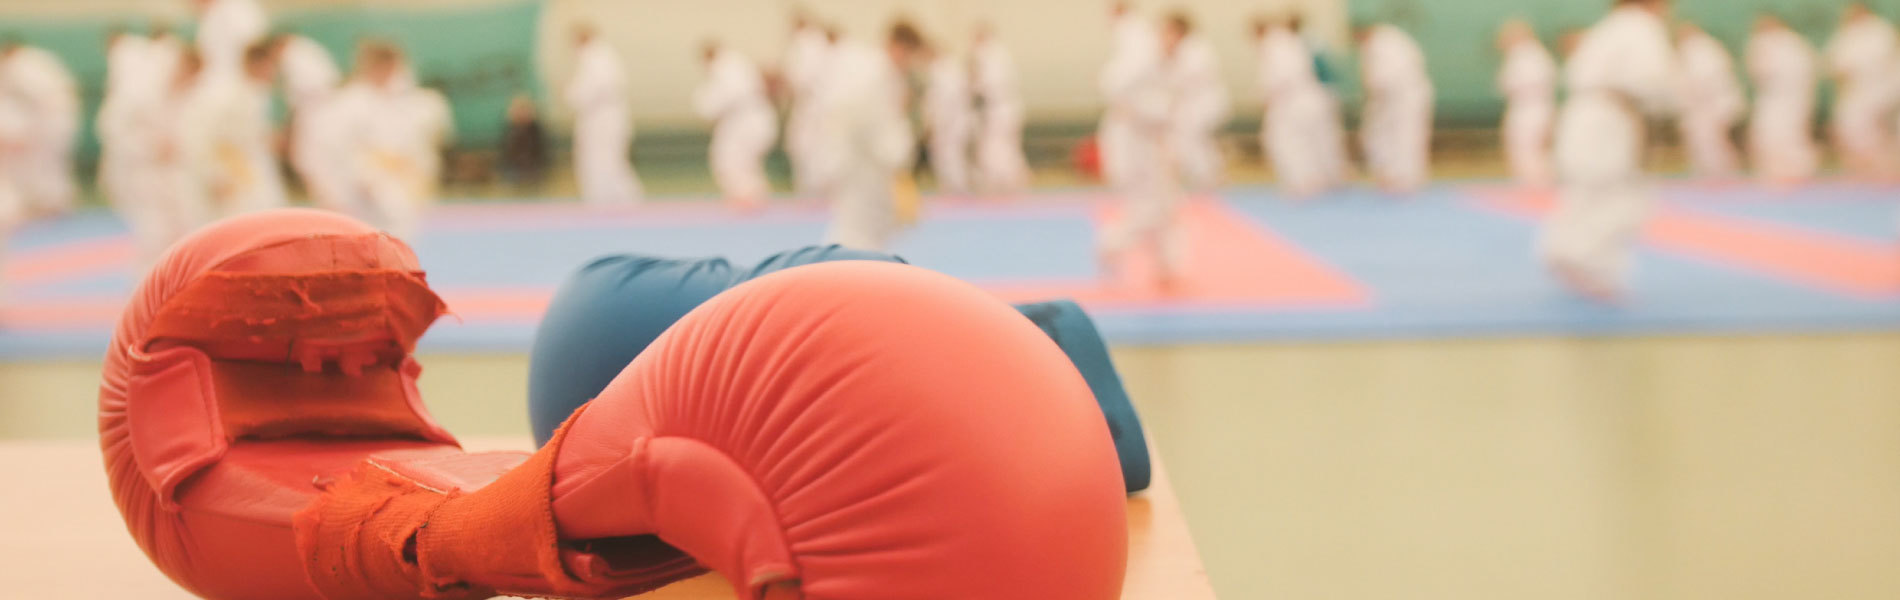 Increasing Safety in Martial Arts Classes without Losing Focus